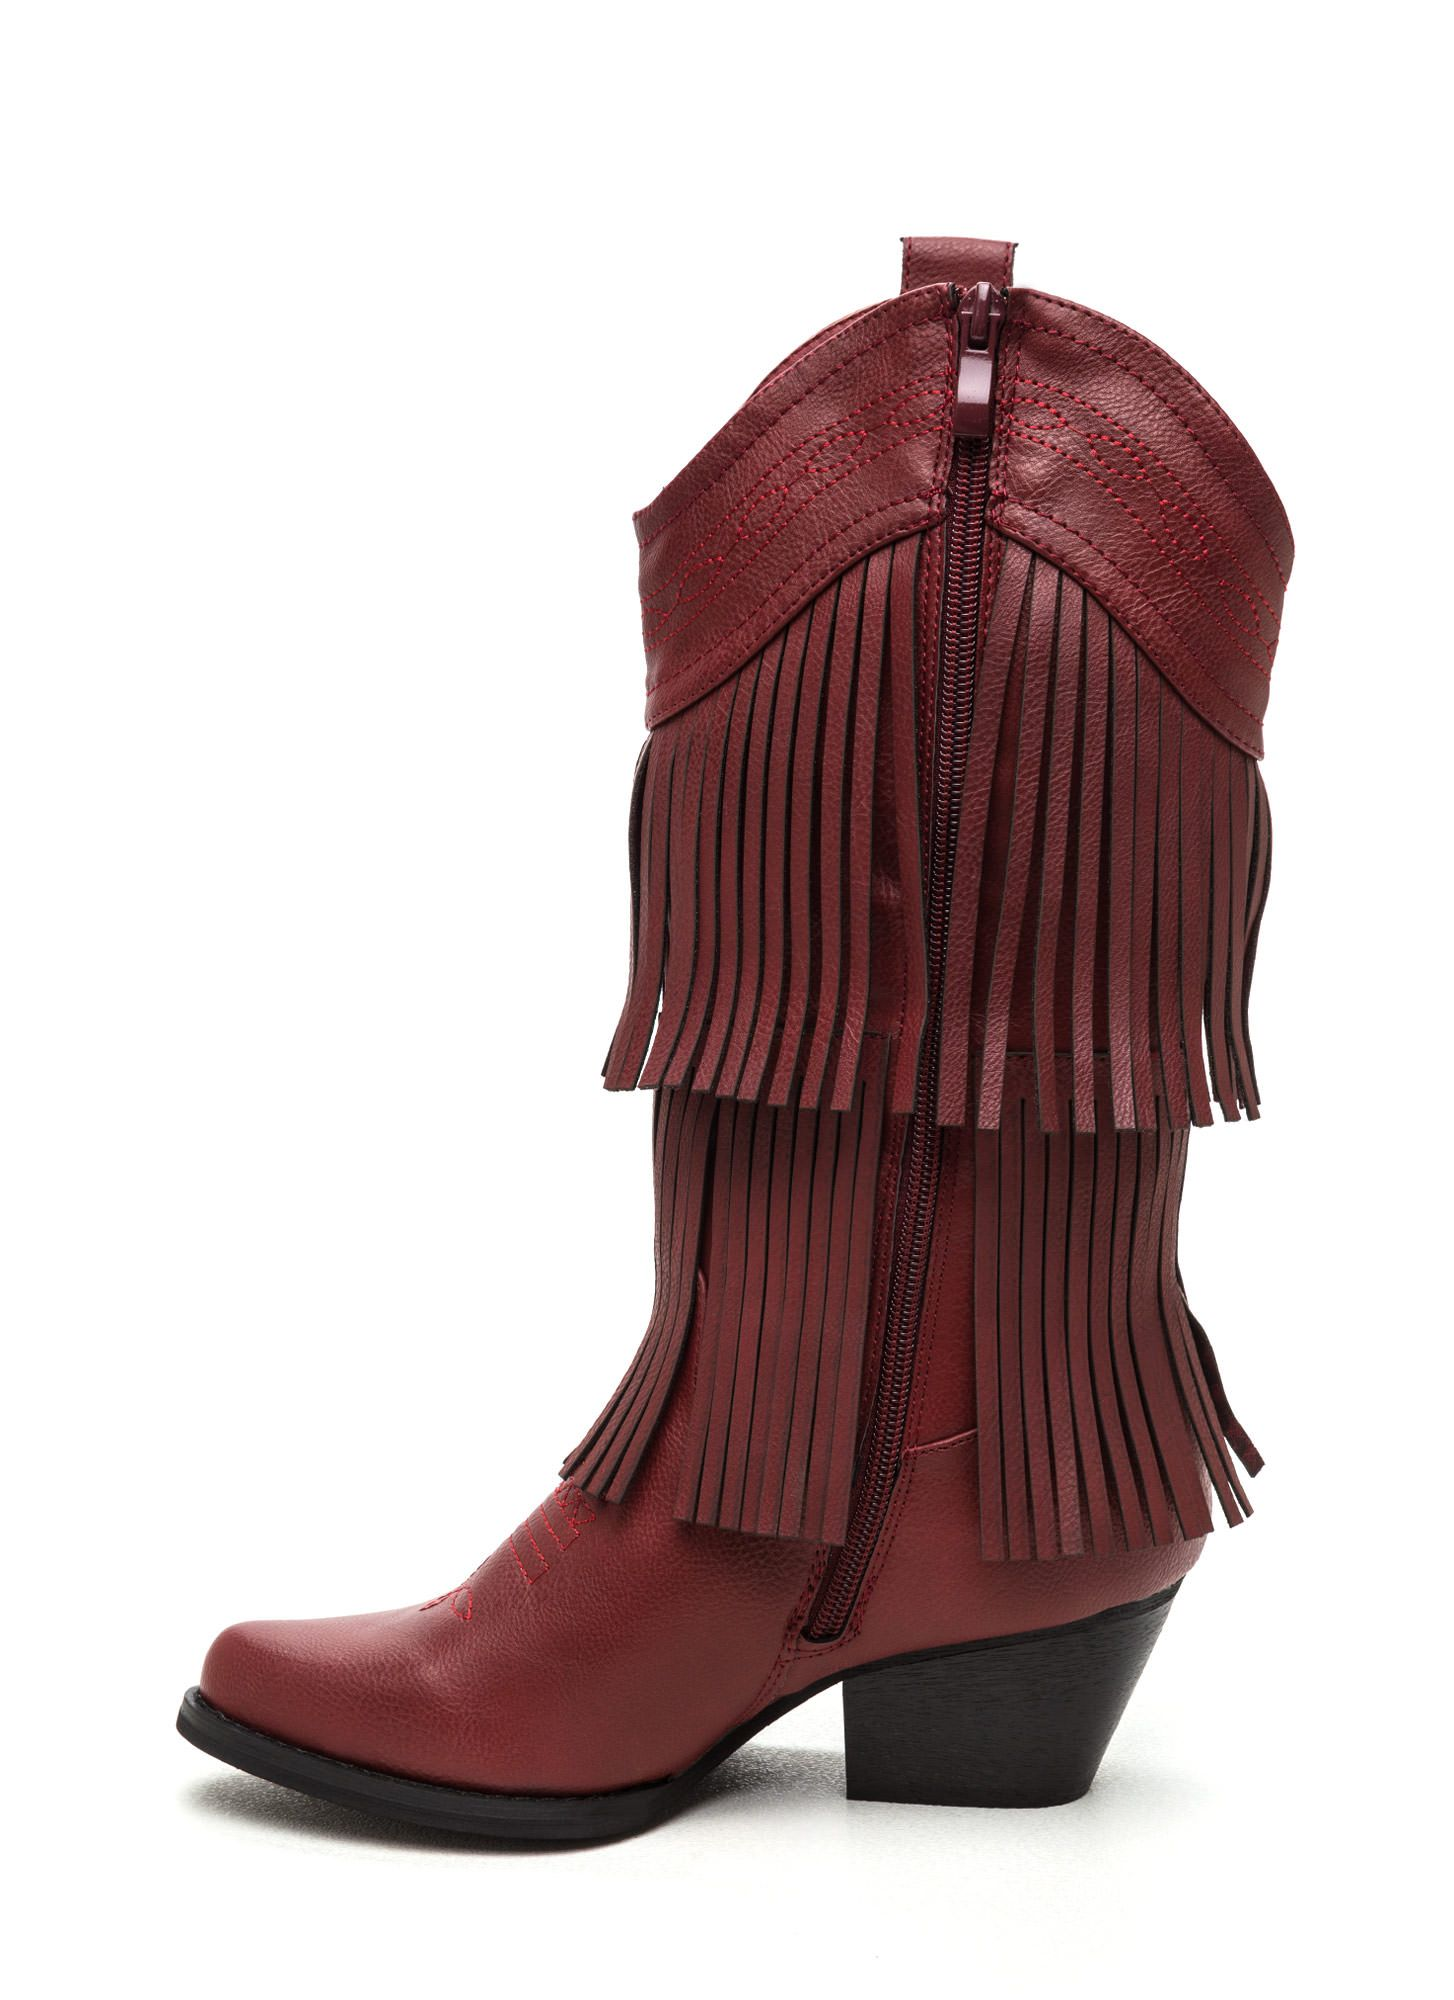 Ride A Cowgirl Chunky Fringe Boots DKBROWN RED - GoJane.com ...